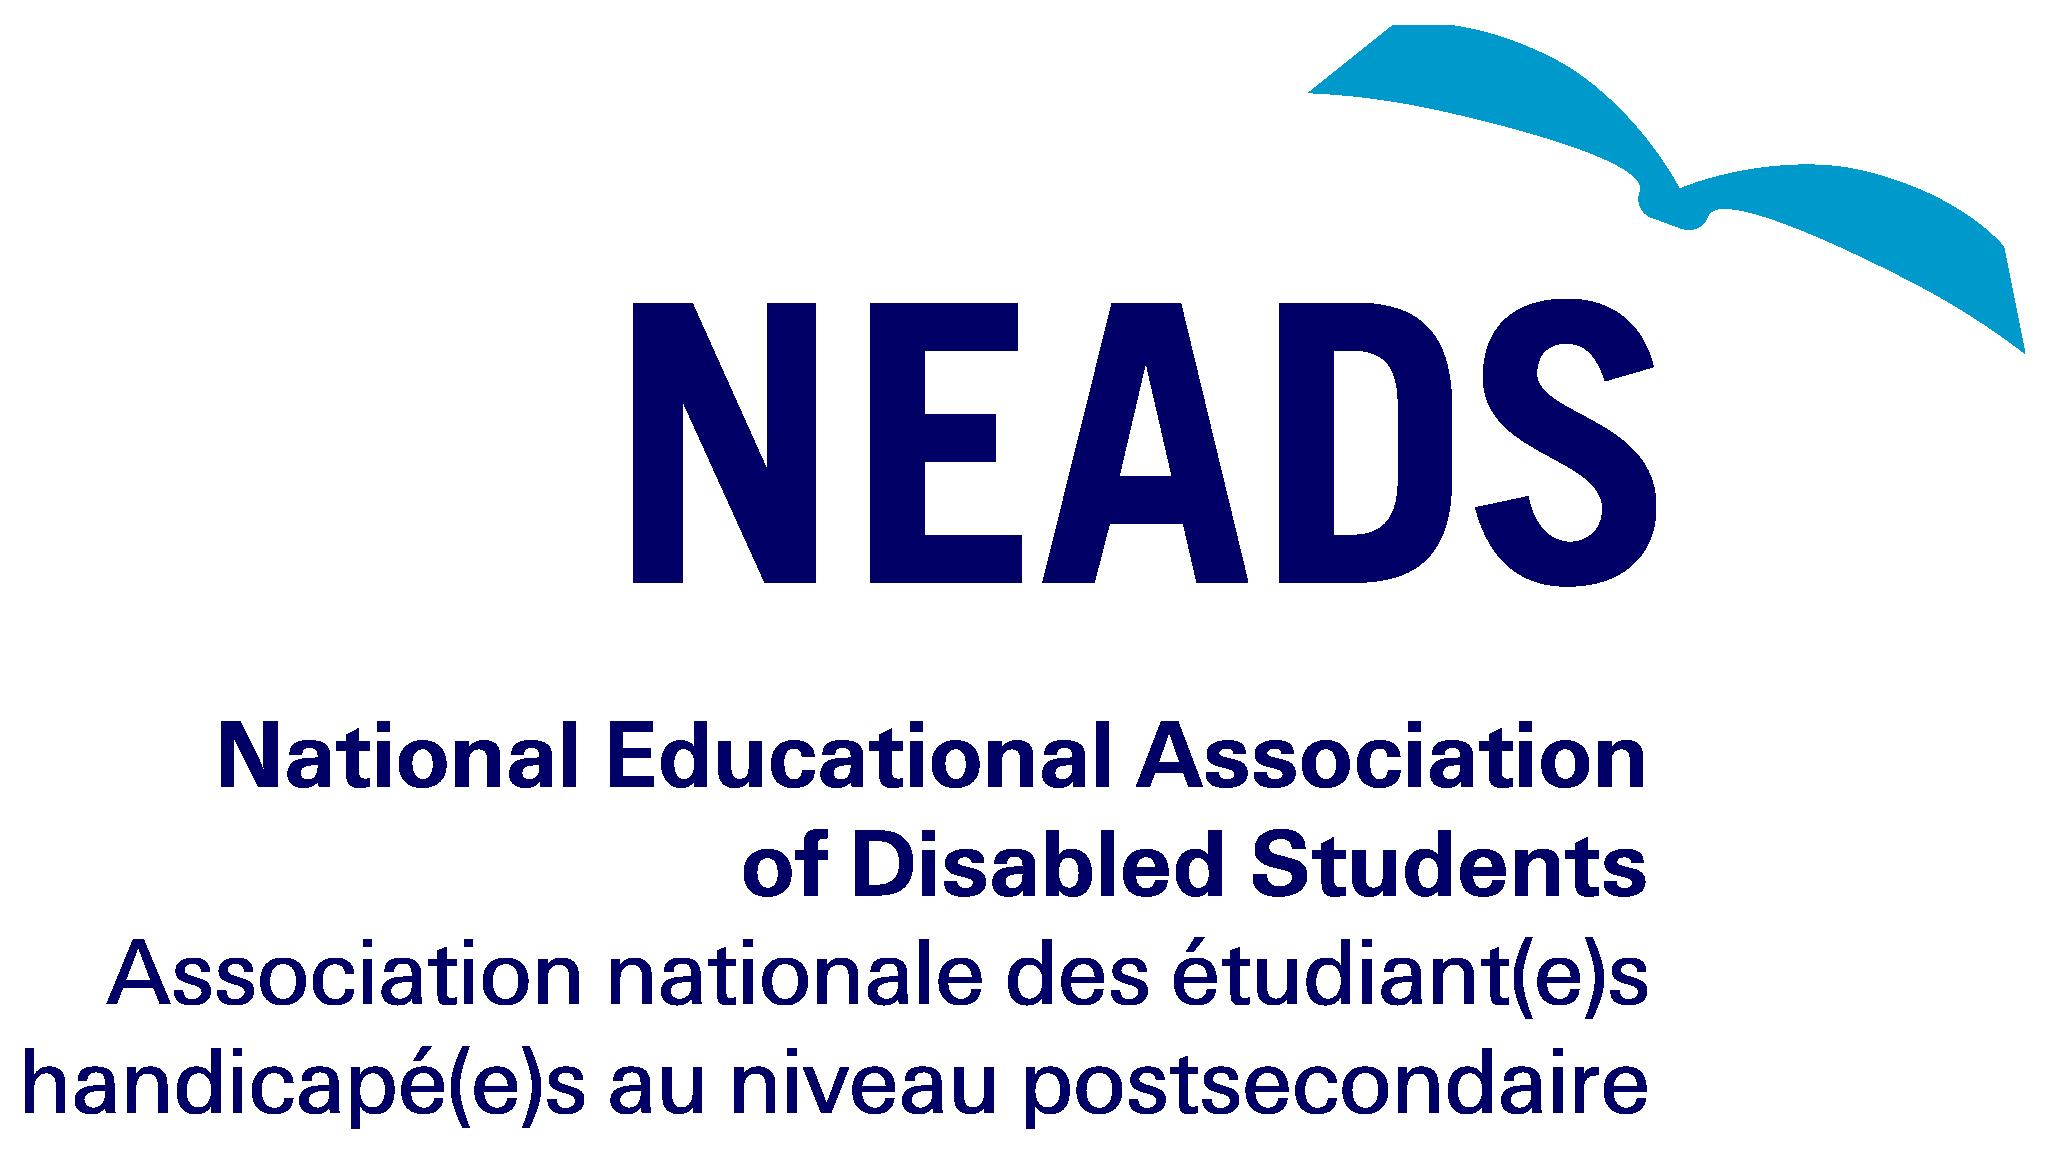 National Educational Association of Disabled Students (NEADS)